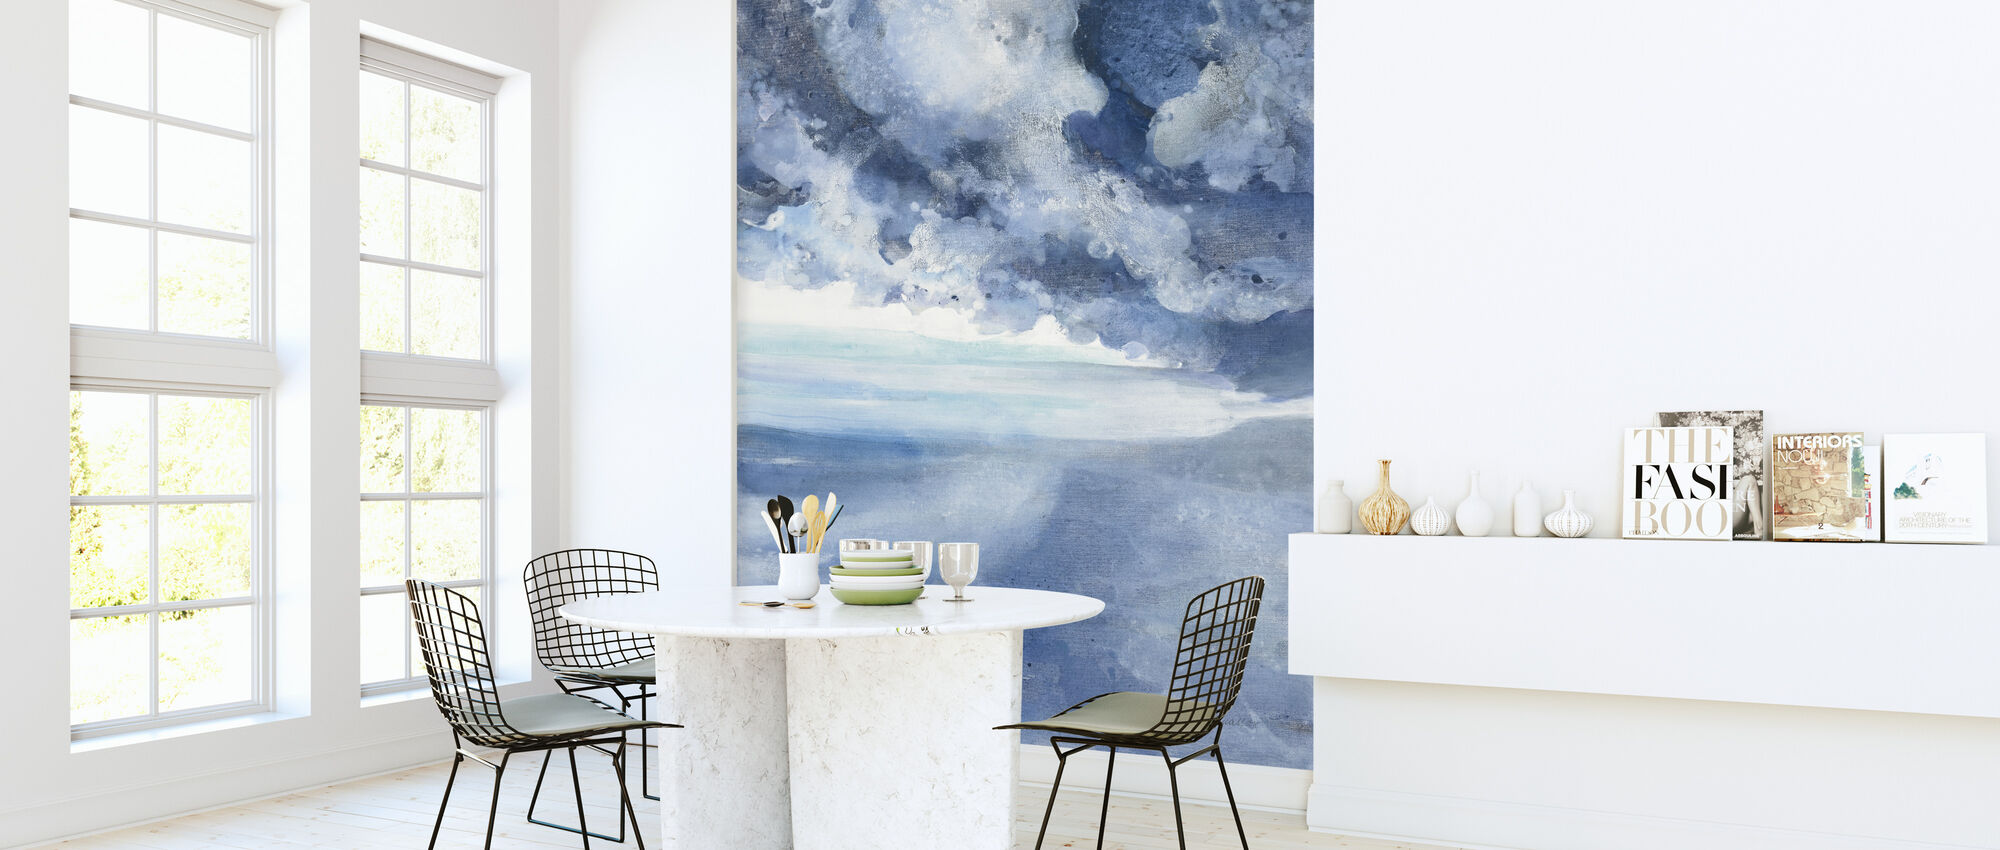 The Sea - Wallpaper - Kitchen